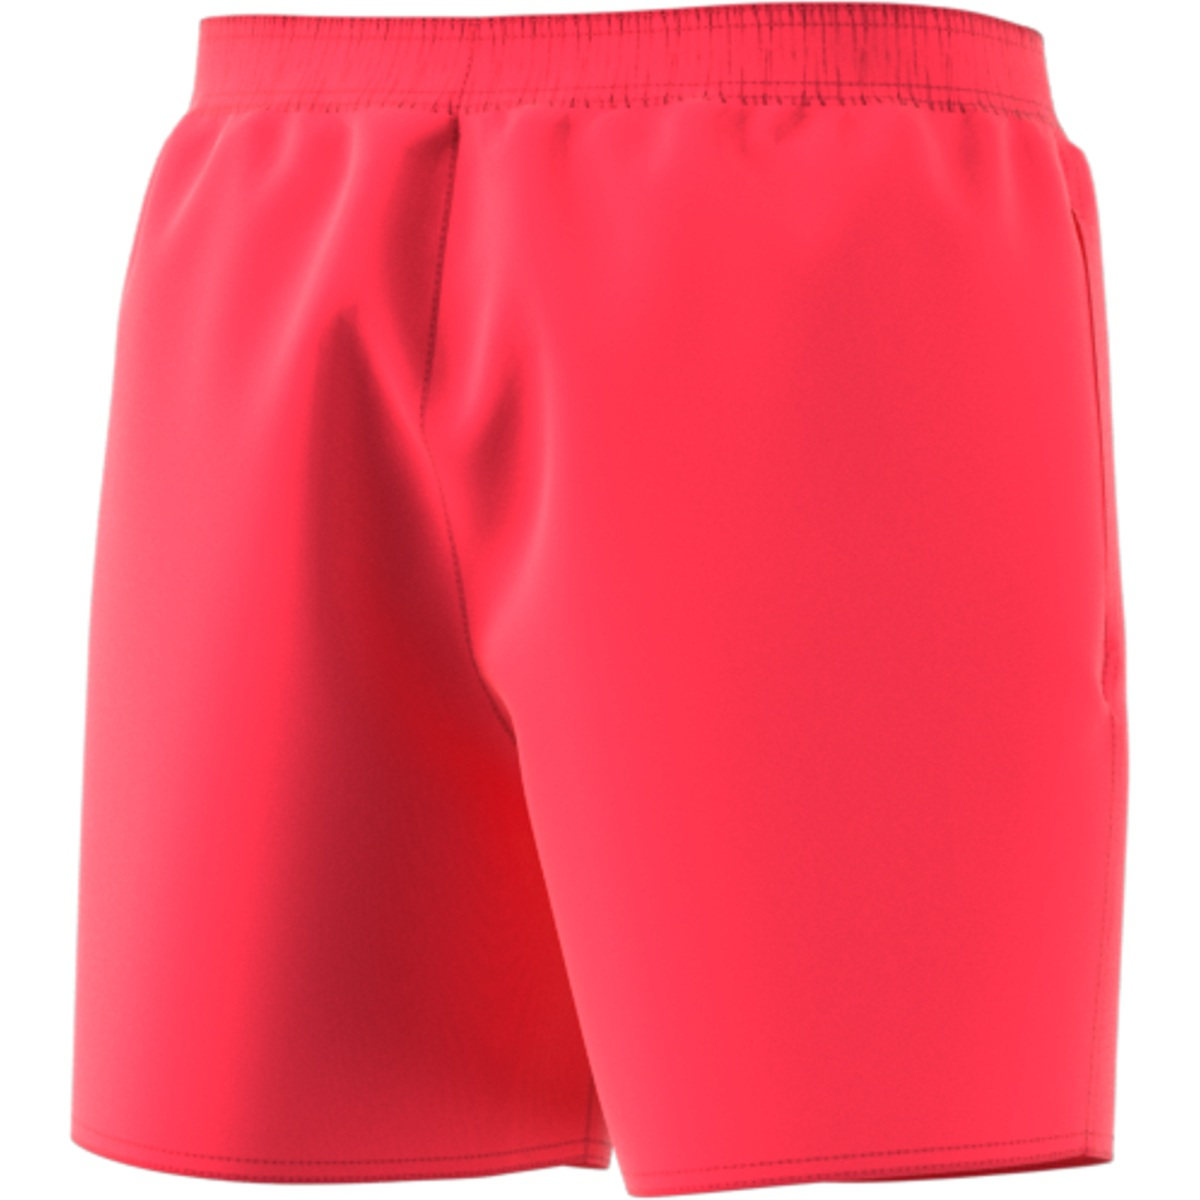 b3dd3853b4eab7 Adidas Solid Zwemshort - Zwemshorts - Bad & Beach - Intersport van ...